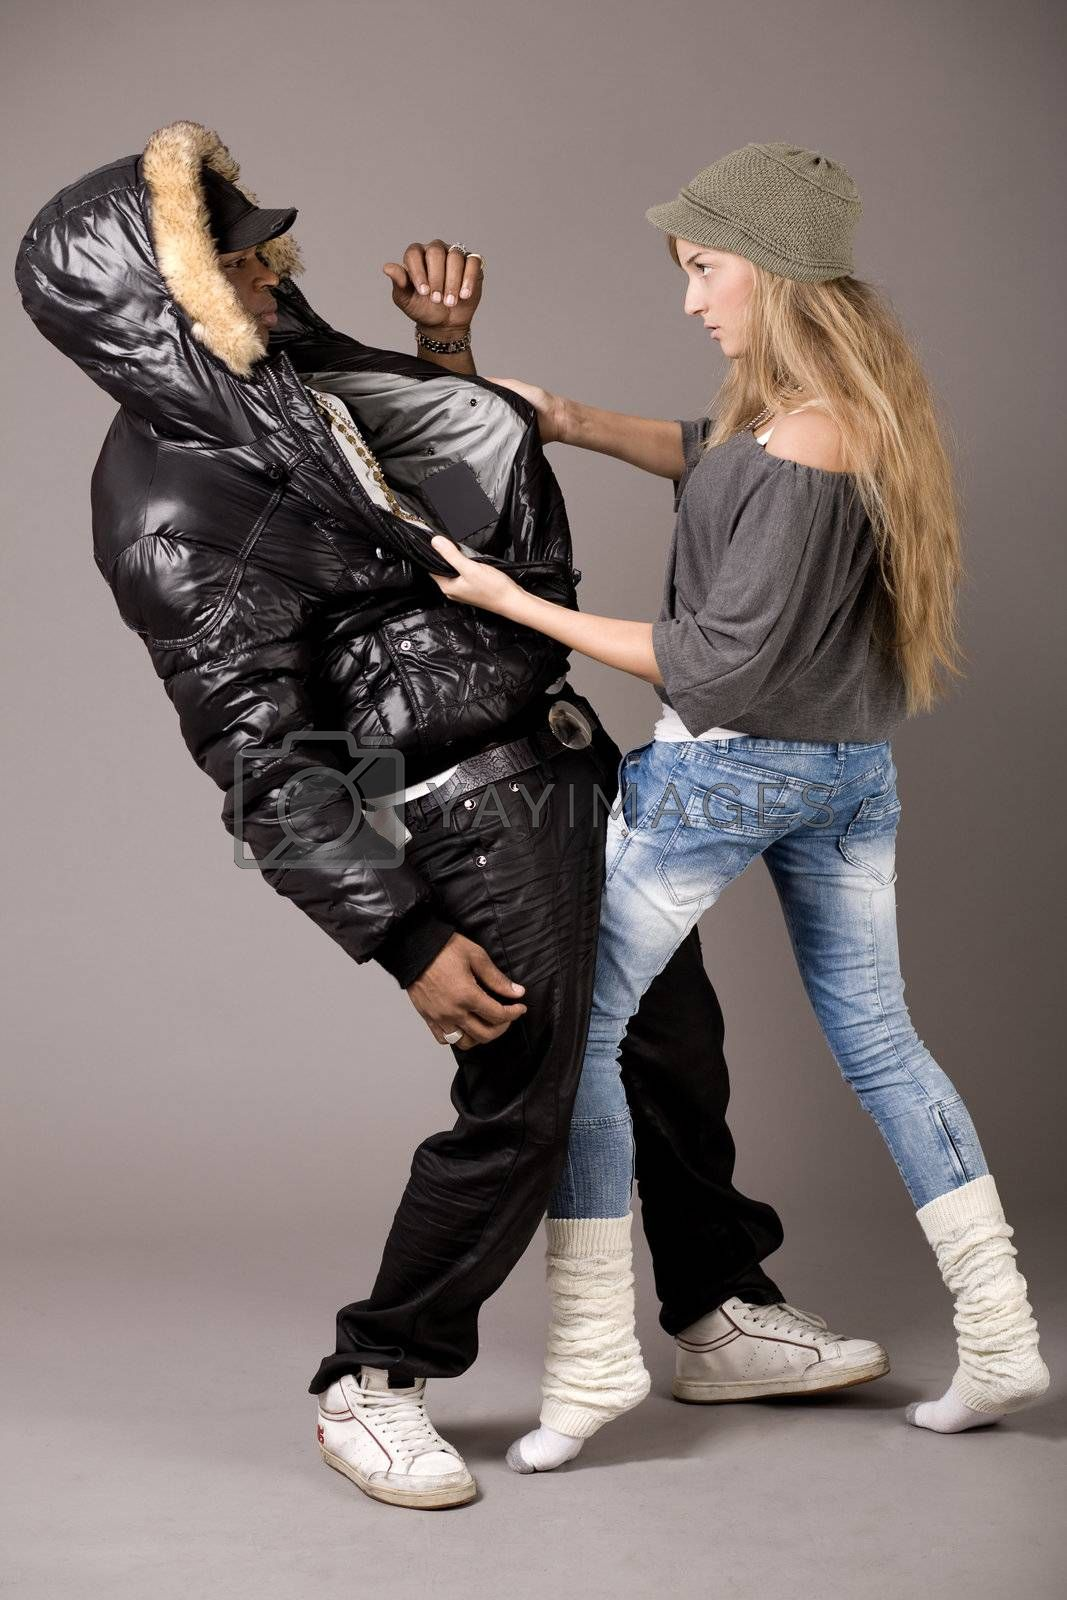 White woman fighting with her boyfriend on grey background